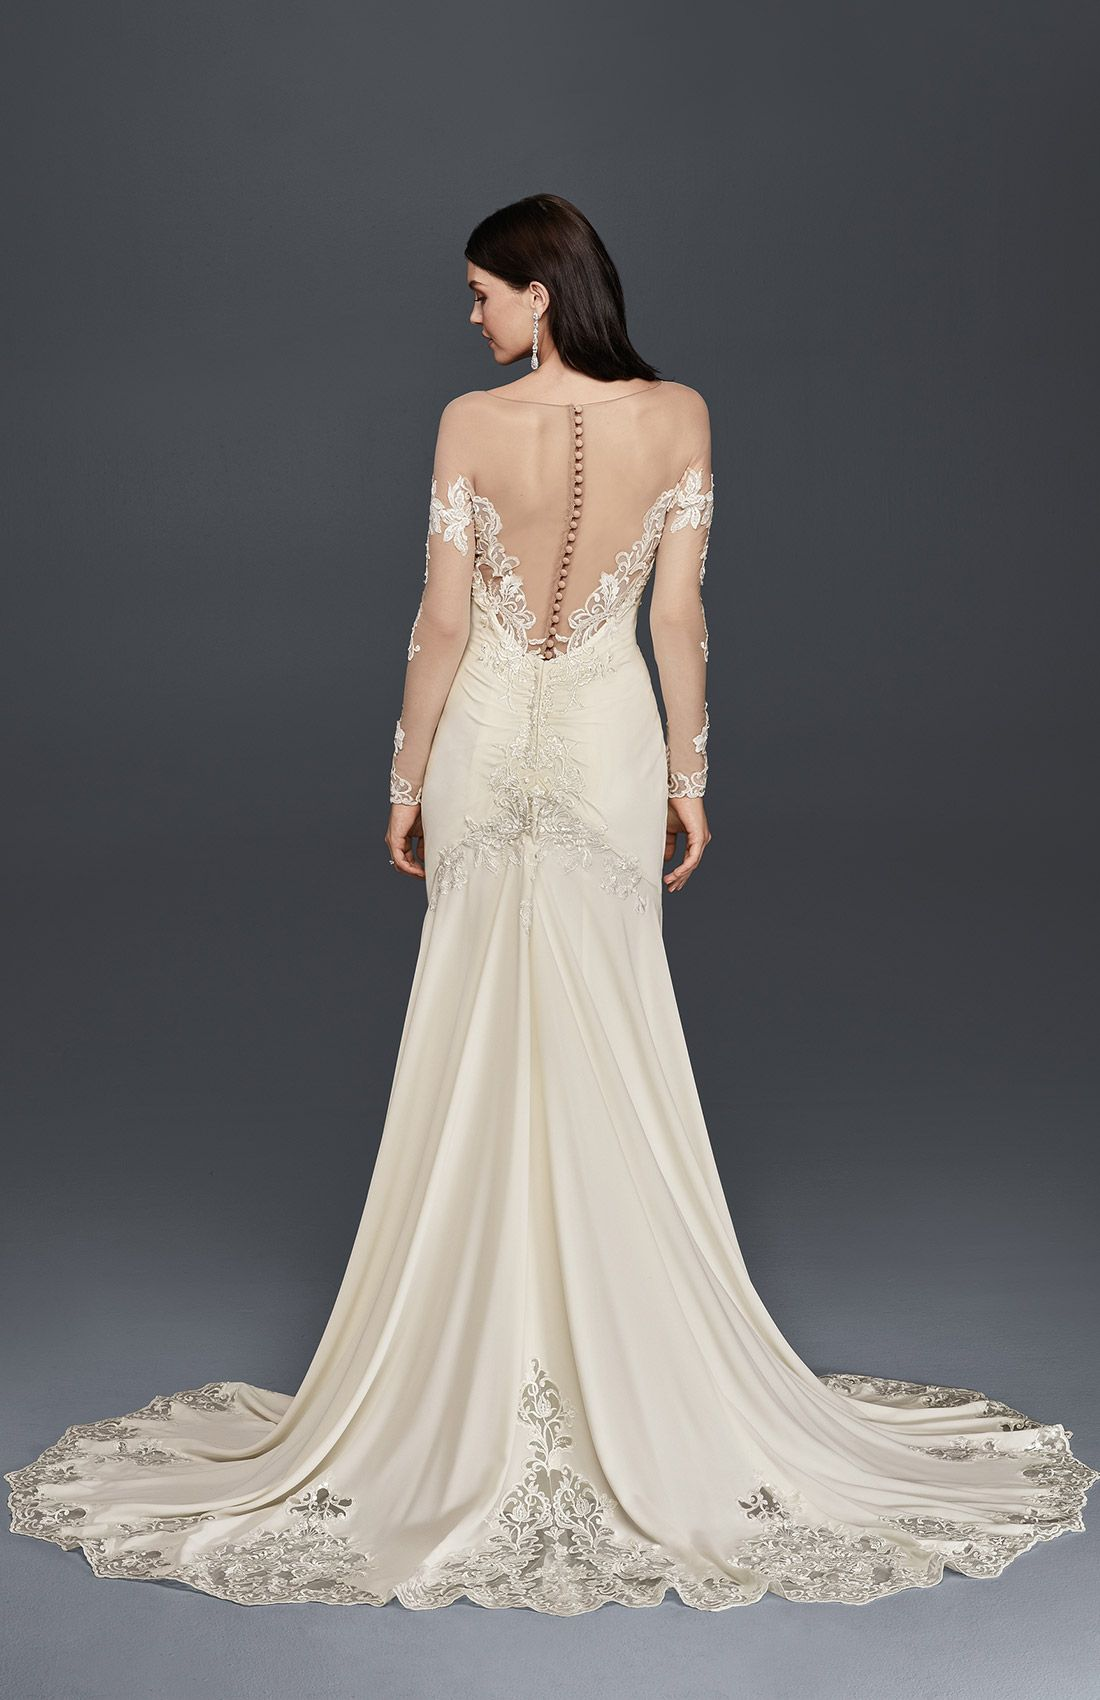 crepe wedding dress with lace inset train | david's bridal spring